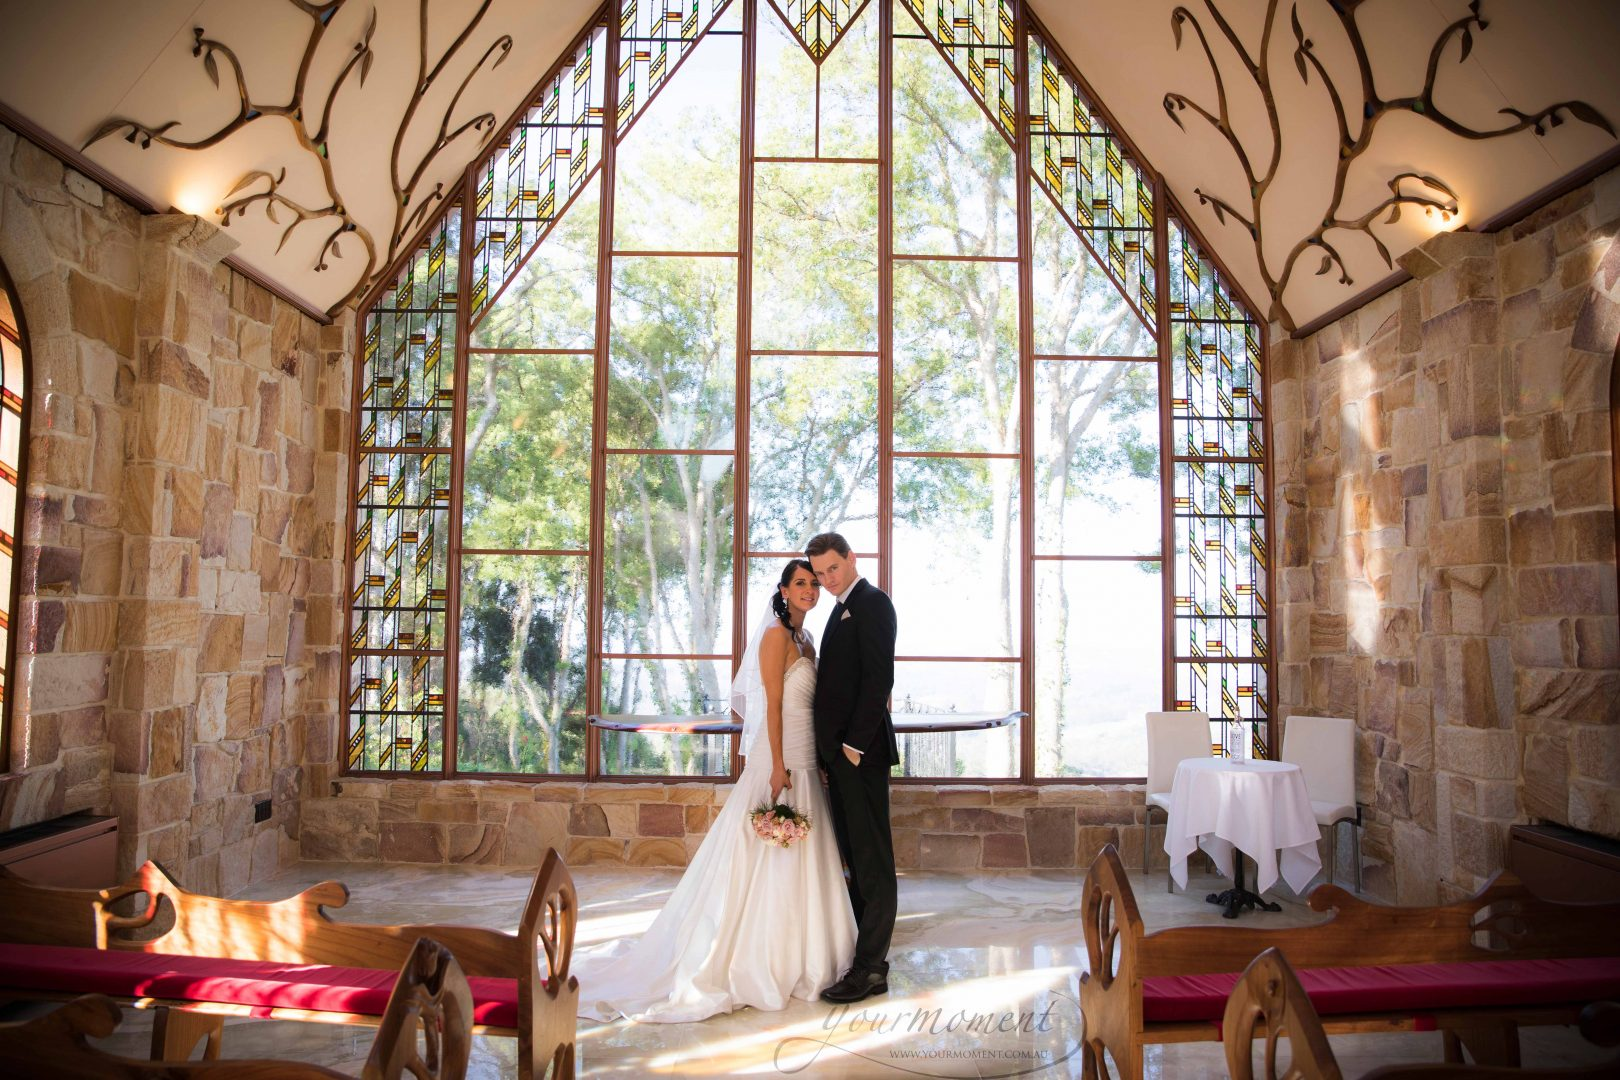 The Chapel Montville Wedding Photography & Videography